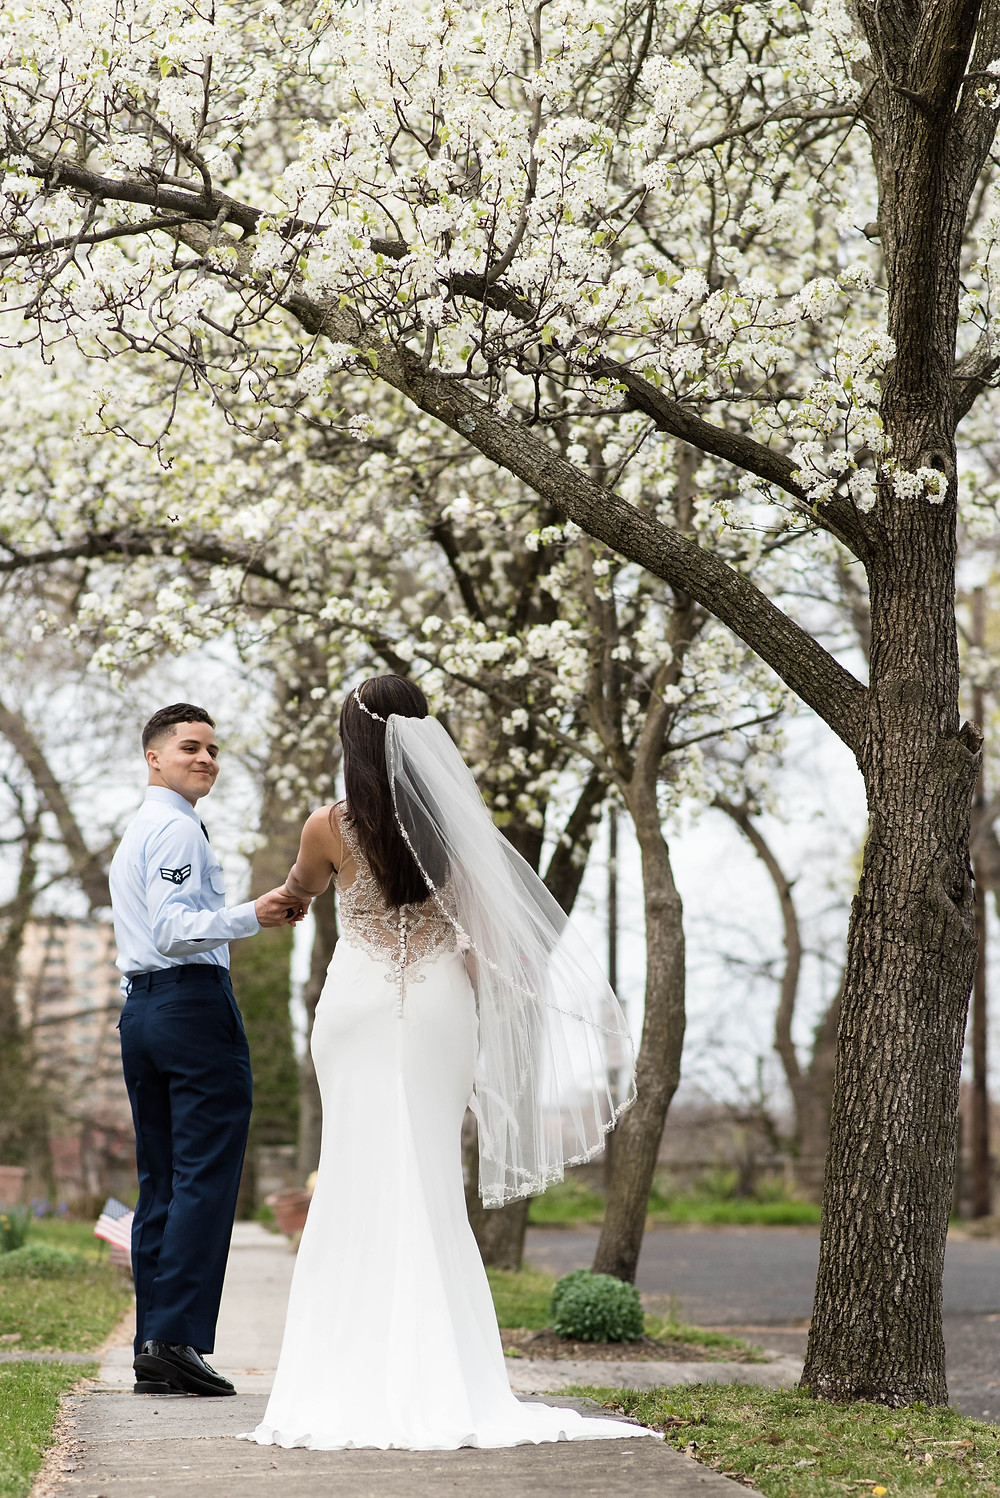 laura and leigh bridal gowns cherry hill new jersey wedding shannon ritter photography